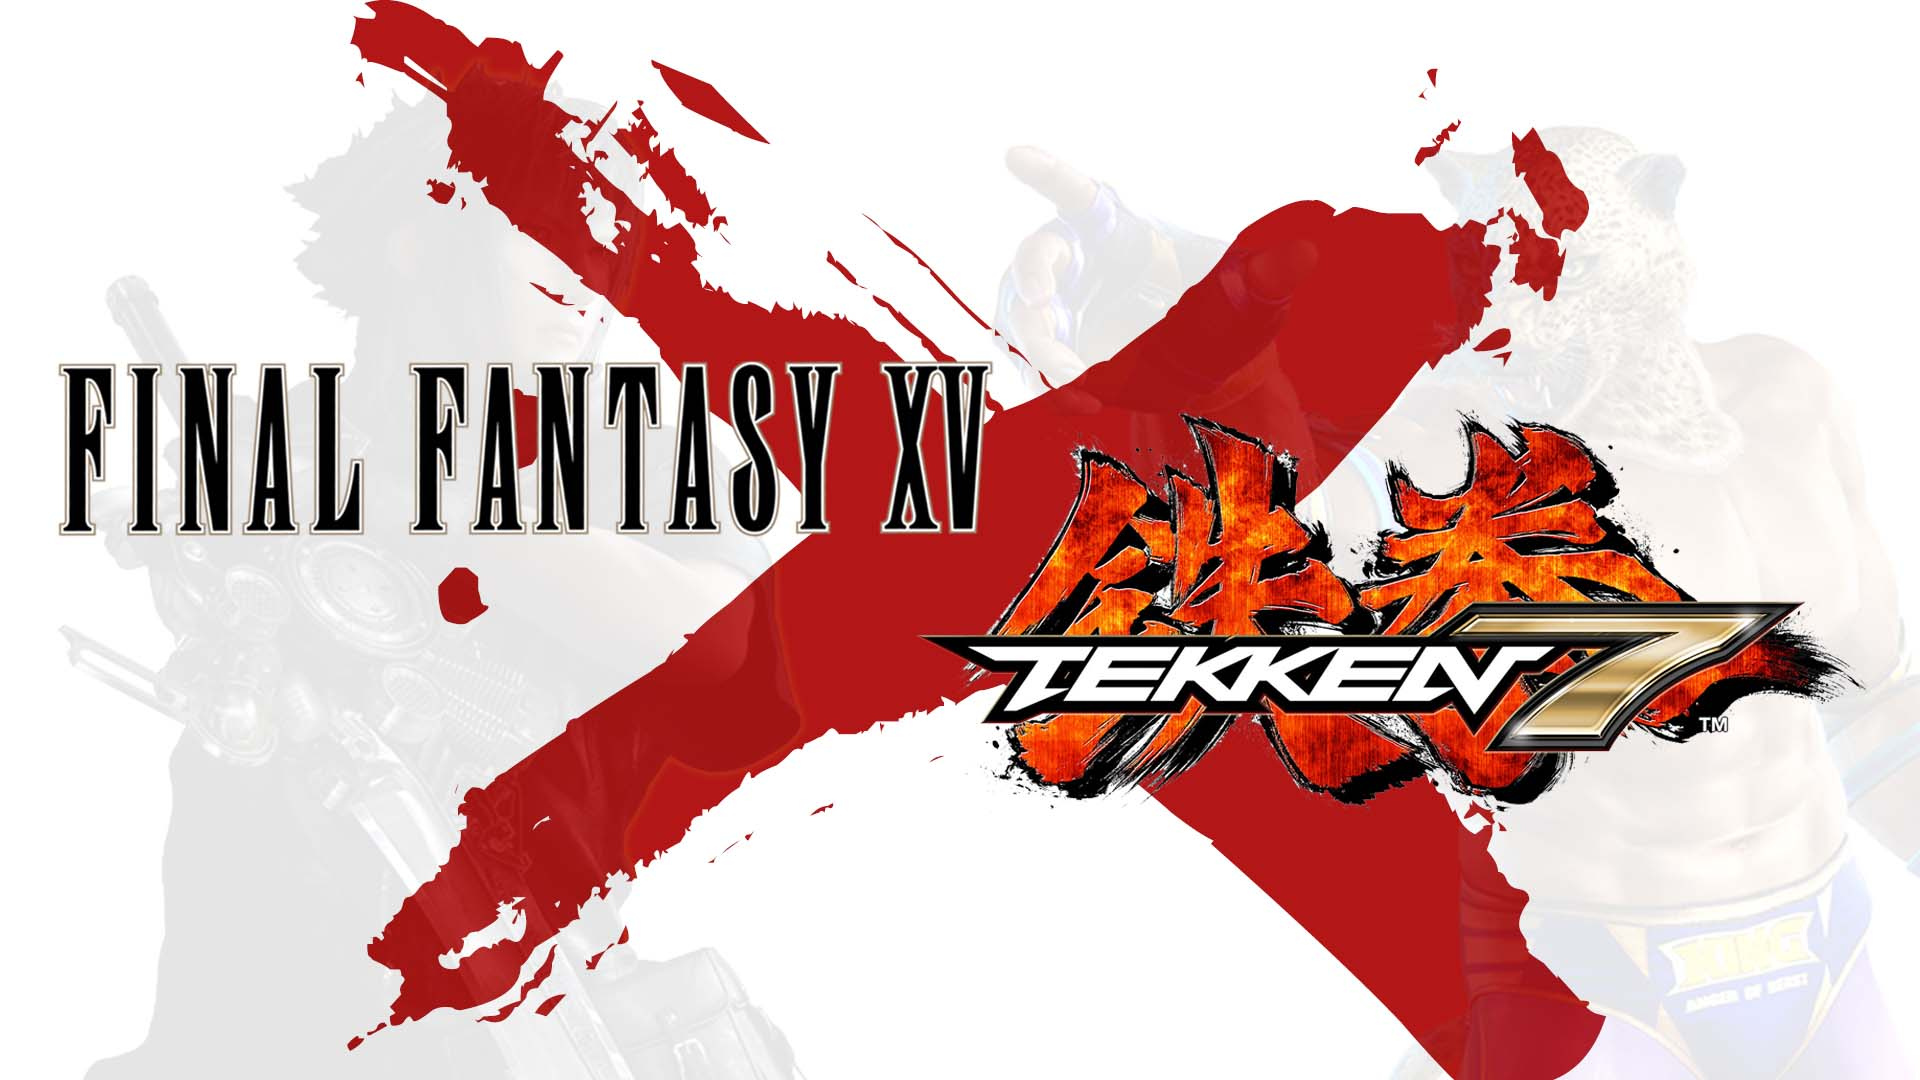 final-fantasy-xv-square-enix-jrpg-action-rpg-tekken-7-fighting-playstation-4-xbox-one-pc-steam